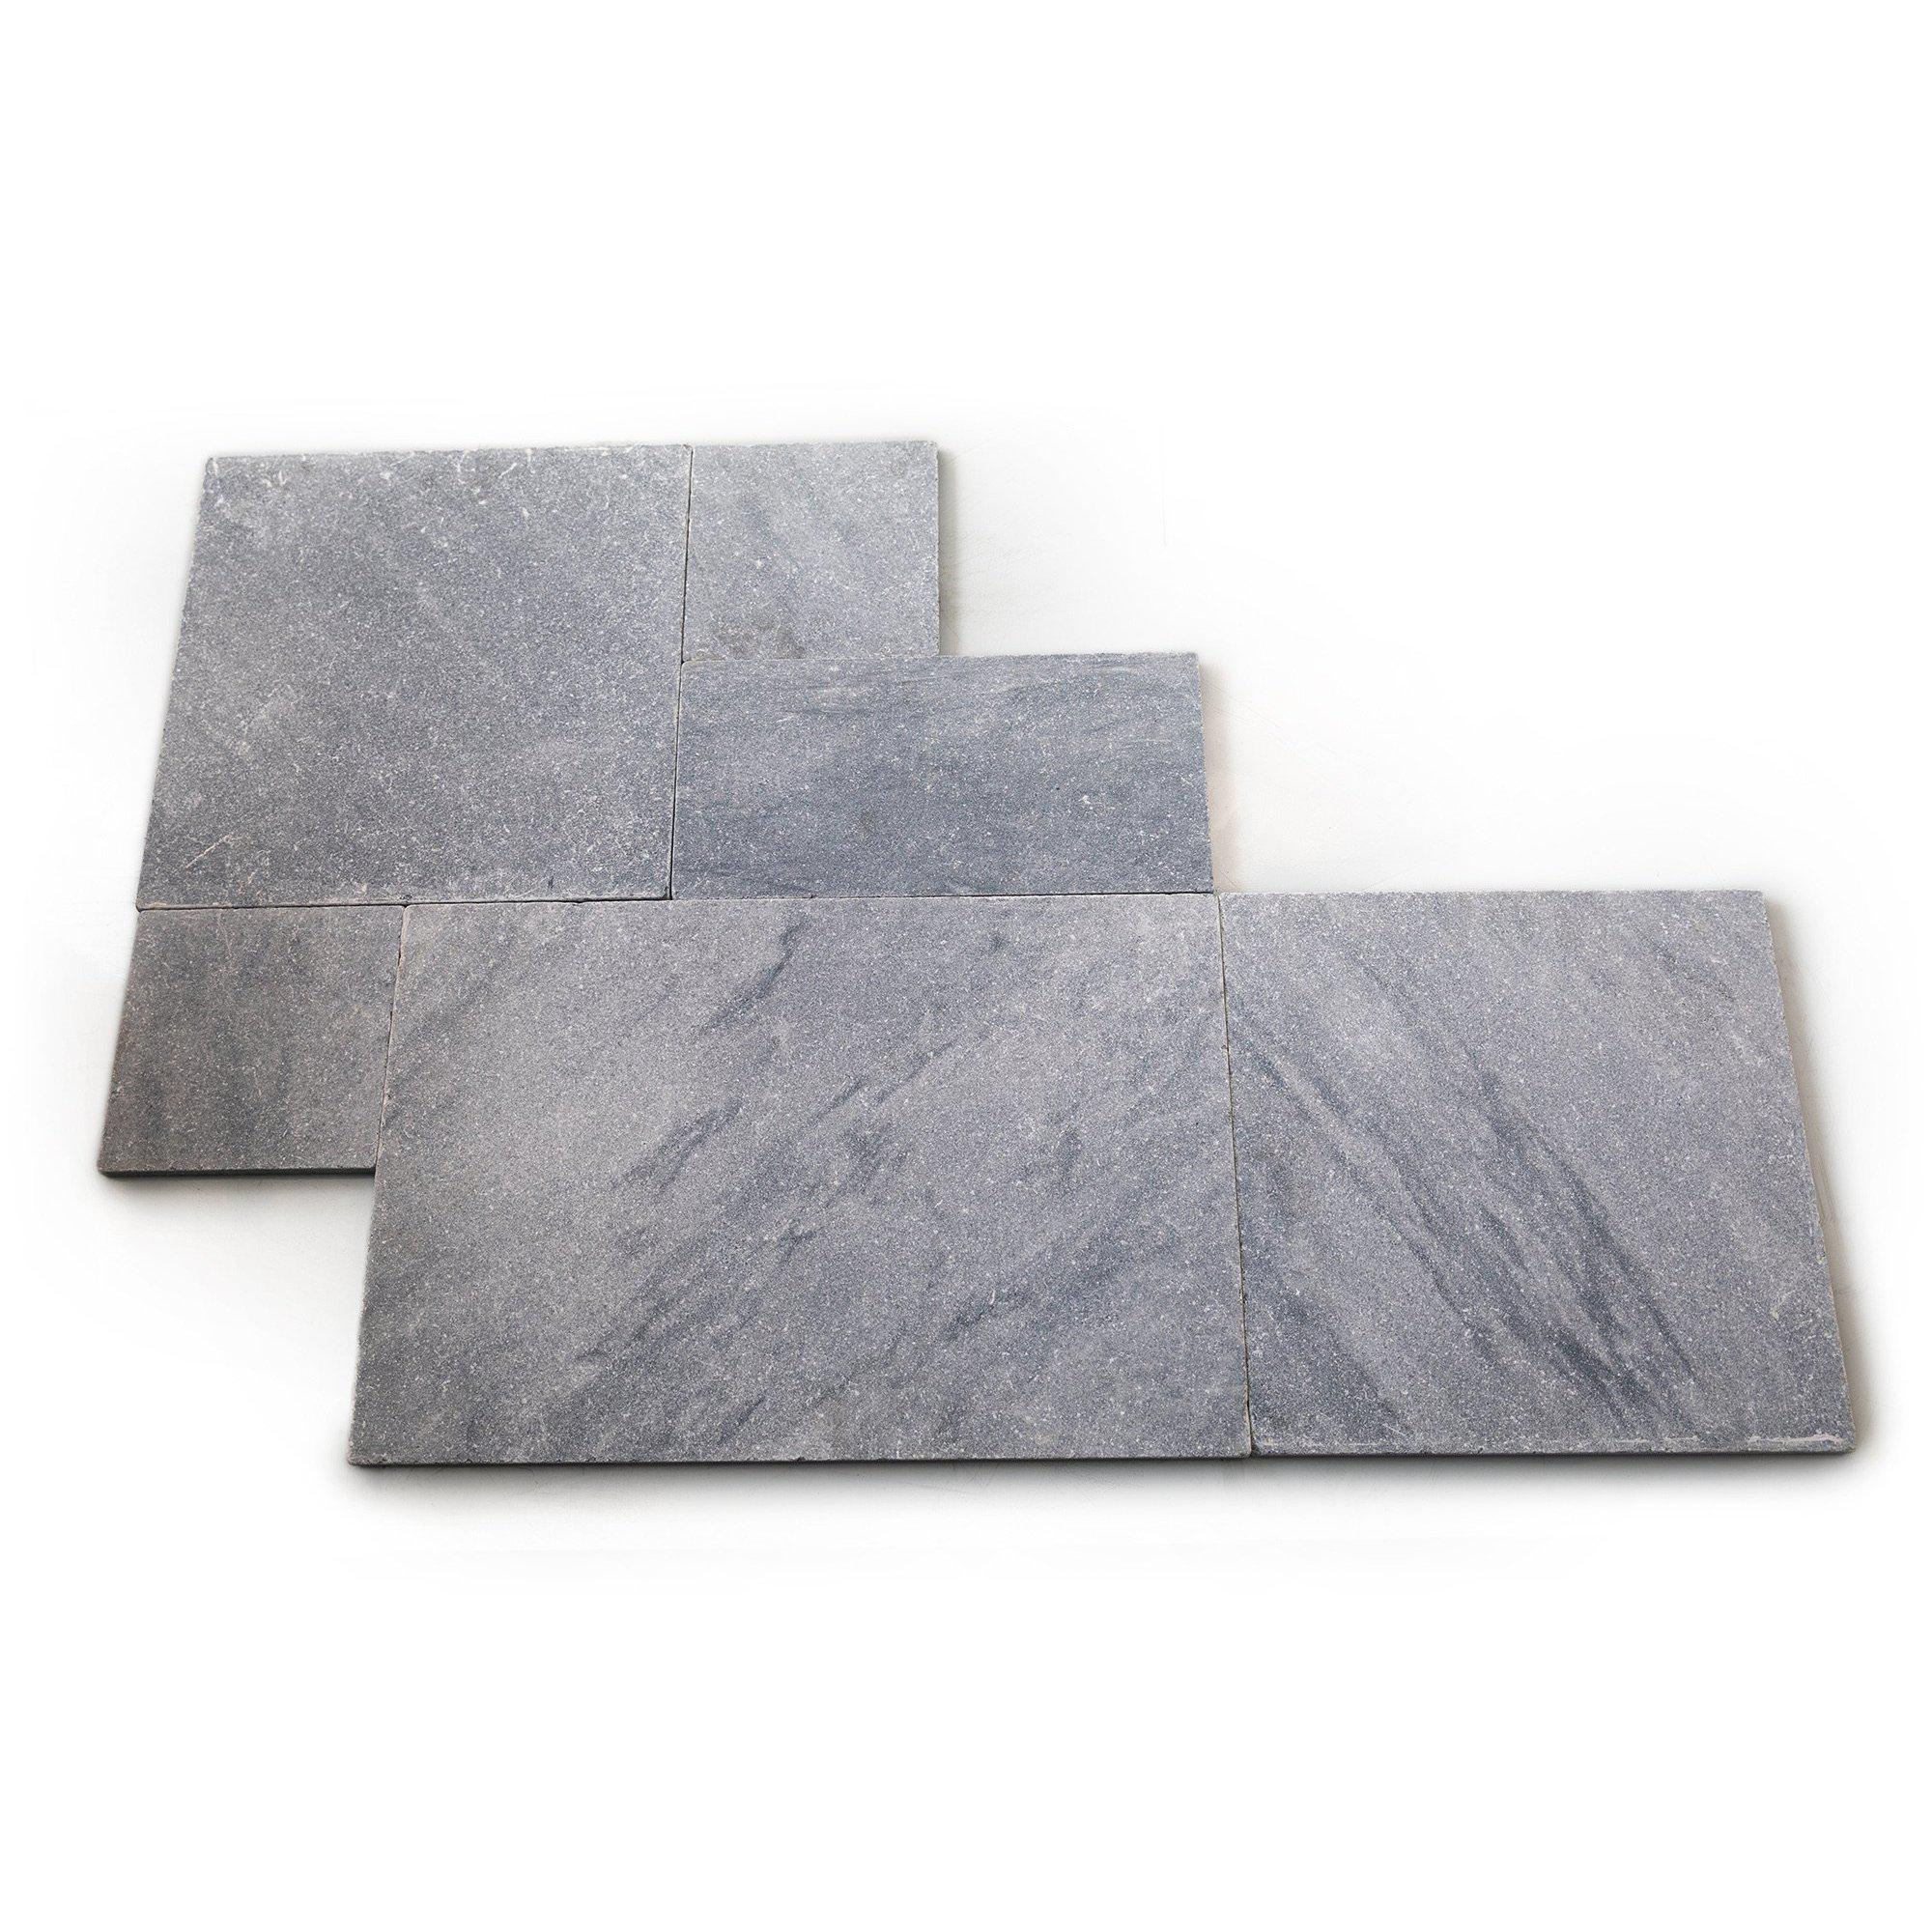 Argento Marble Paver Tiles Sandblasted & Tumbled French 30mm